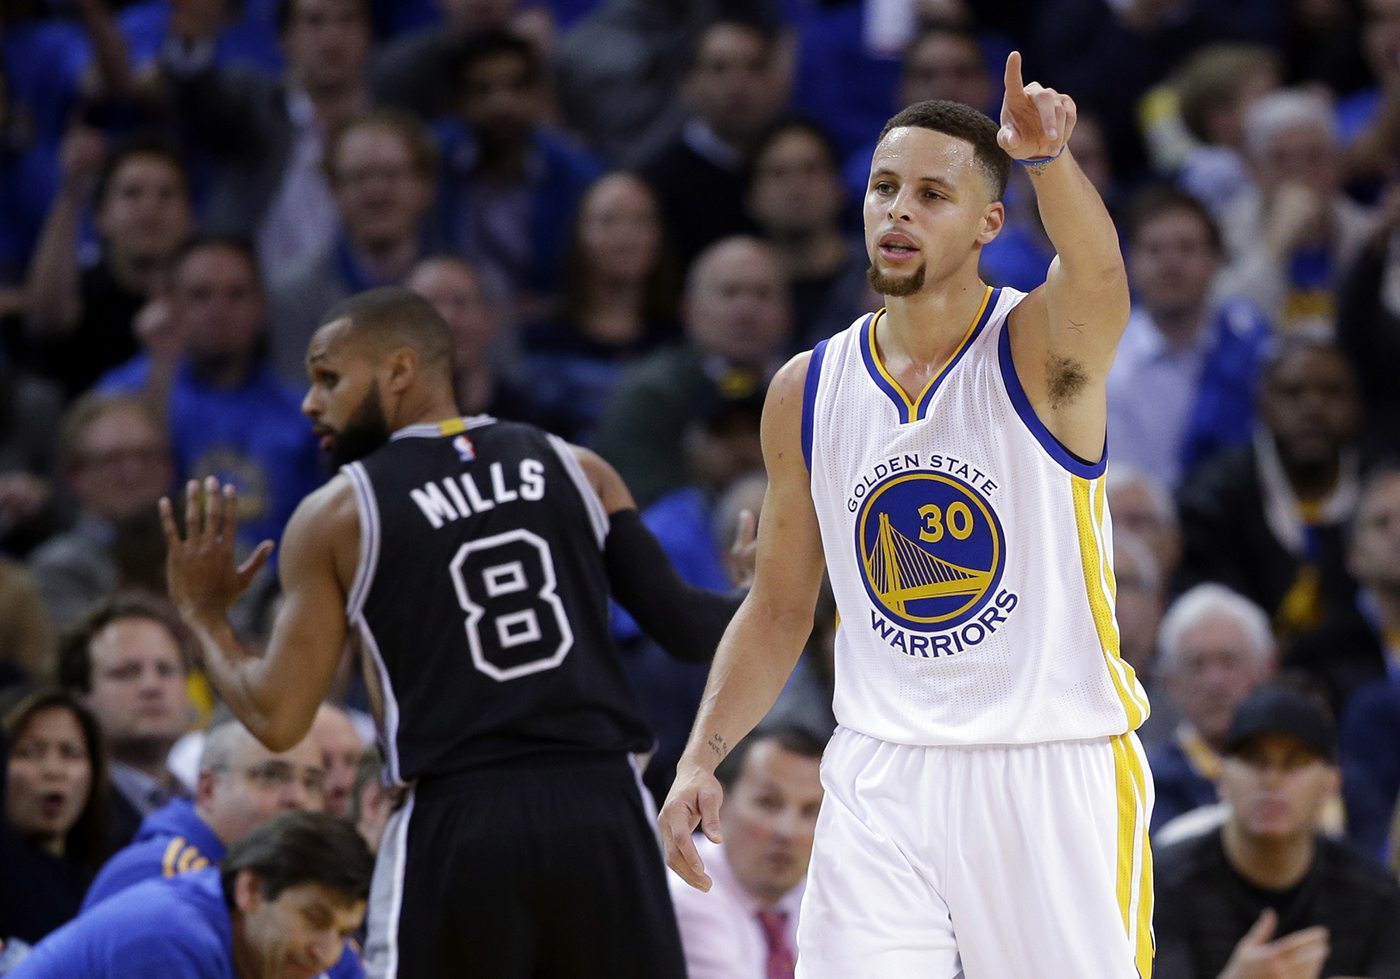 Warriors' Stephen Curry signals to his team in front of Spurs' Patty Mills (8) during the game Monday. (AP Photo/Marcio Jose Sanchez)